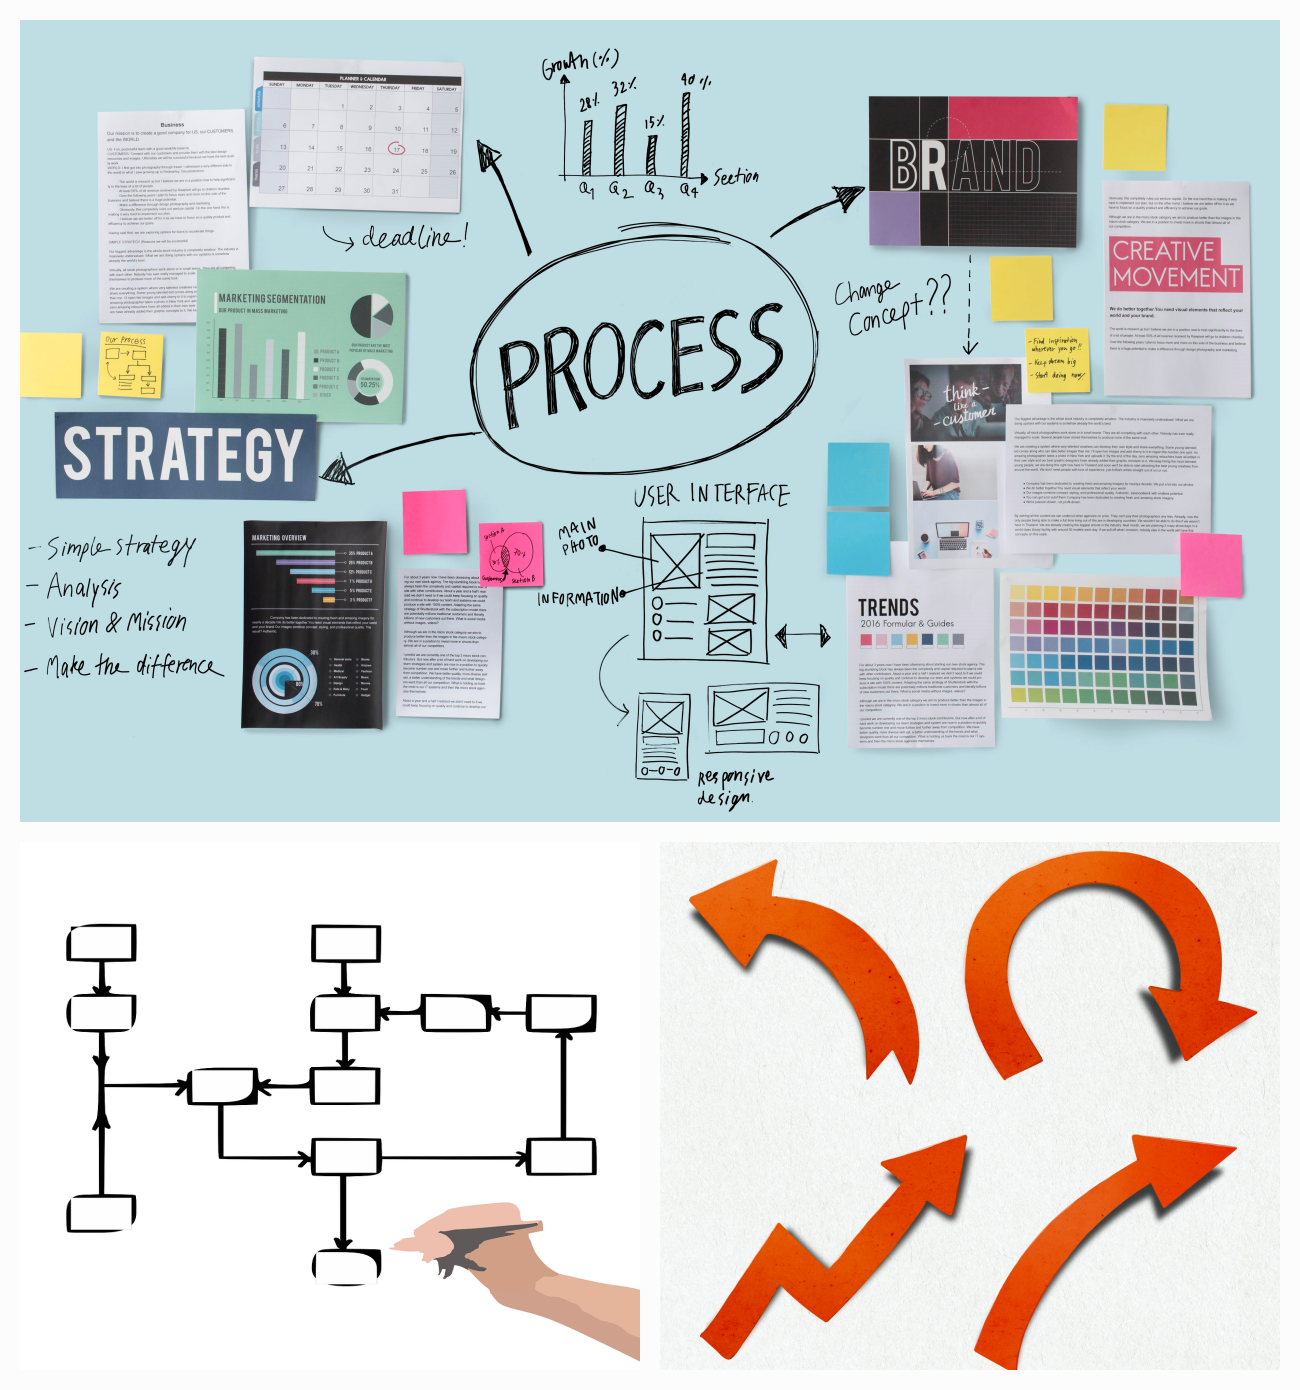 Business Processes Inputs Outputs